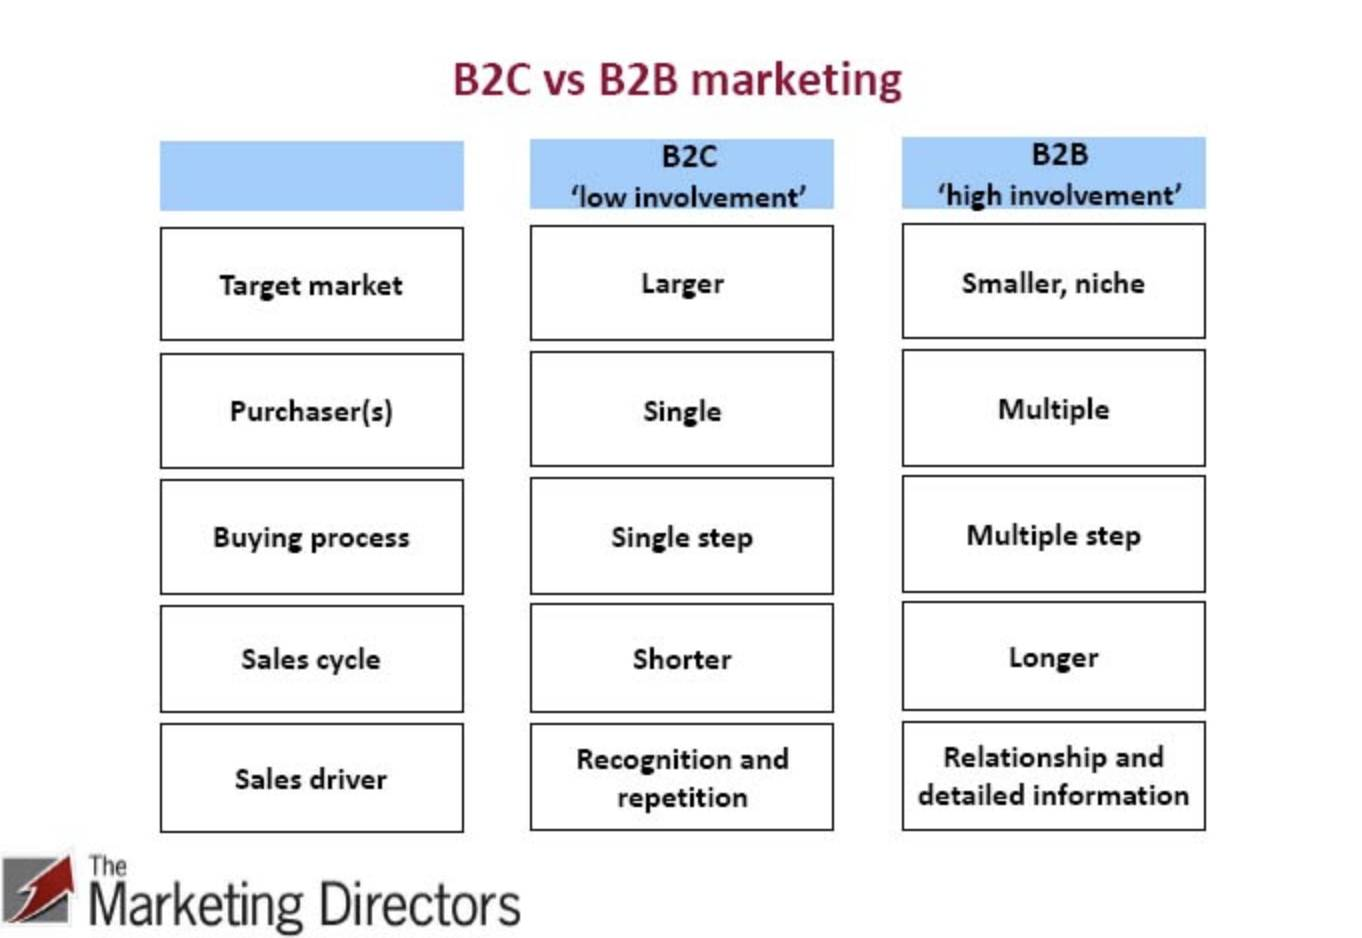 B2B vs B2C customer experience journey map